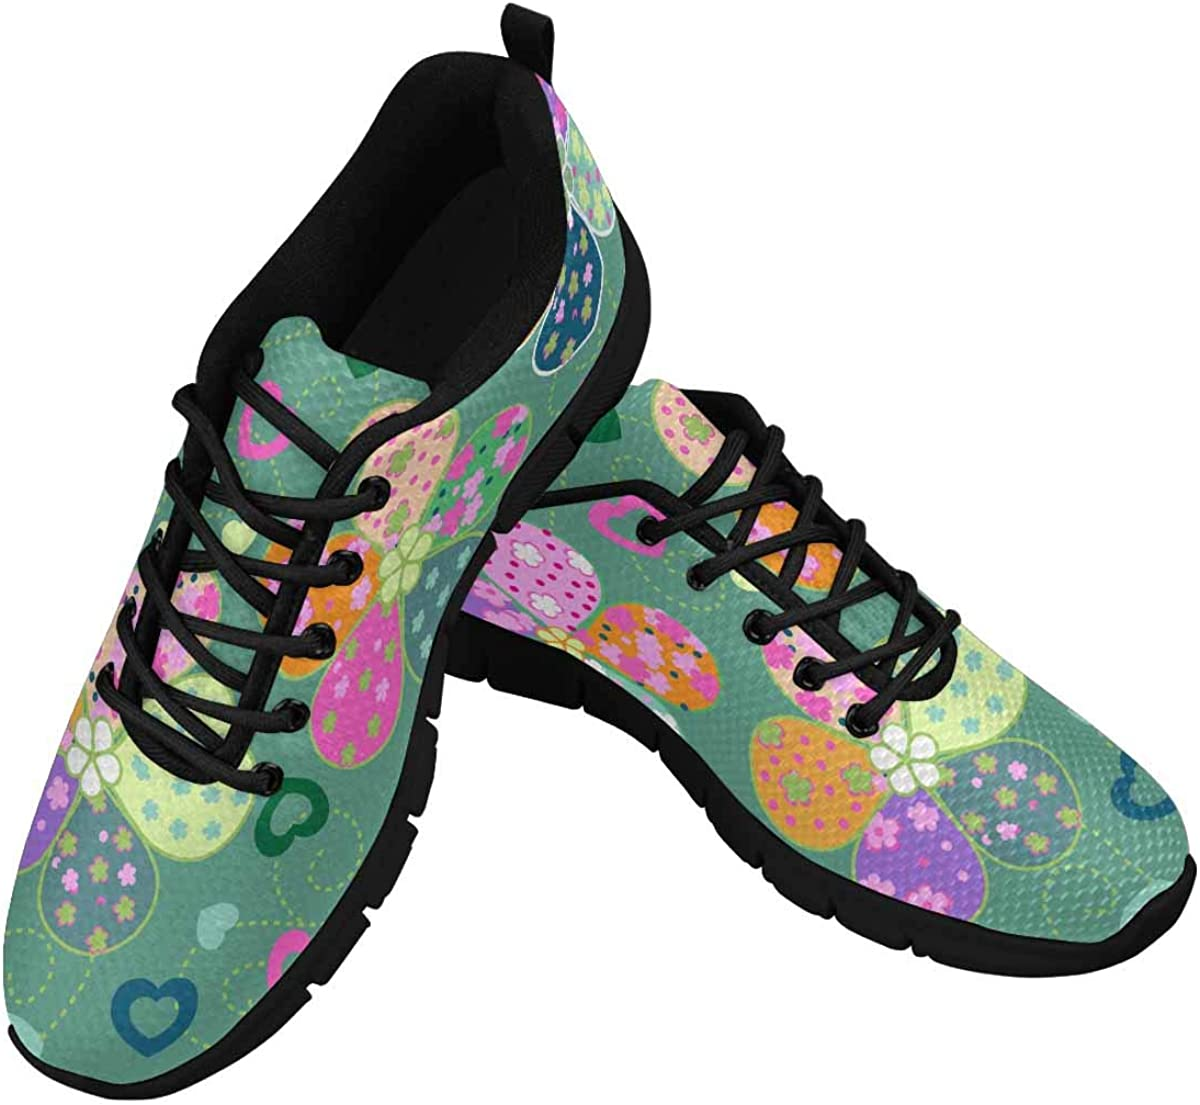 INTERESTPRINT Colorful Flowers Background Women's Running Shoes Mesh Breathable Sports Casual Shoes